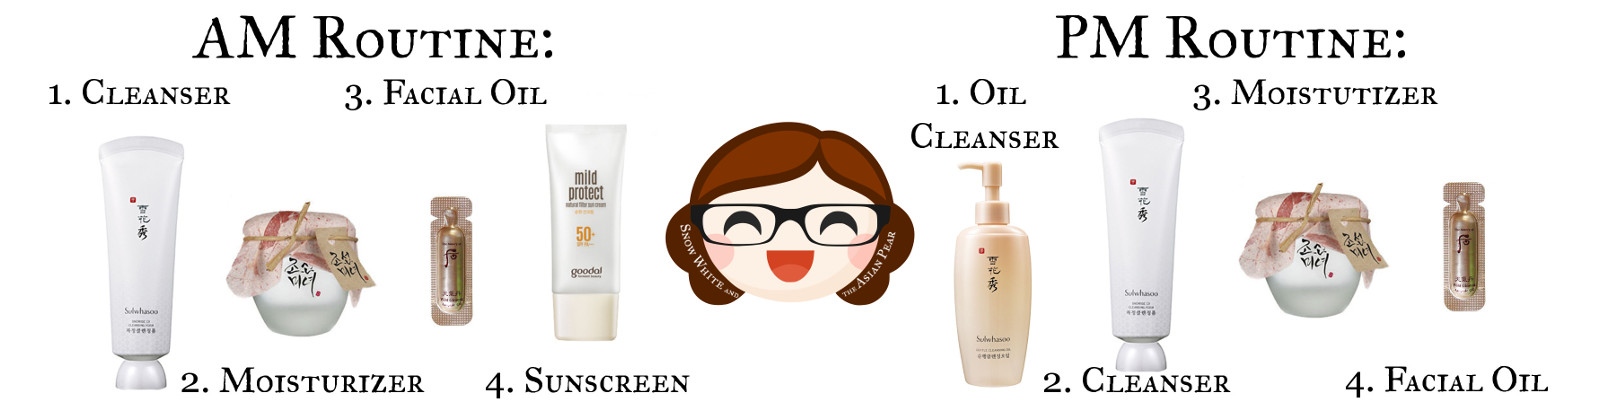 Simple K-Beauty routine for sensitive, aging skin on Amazon